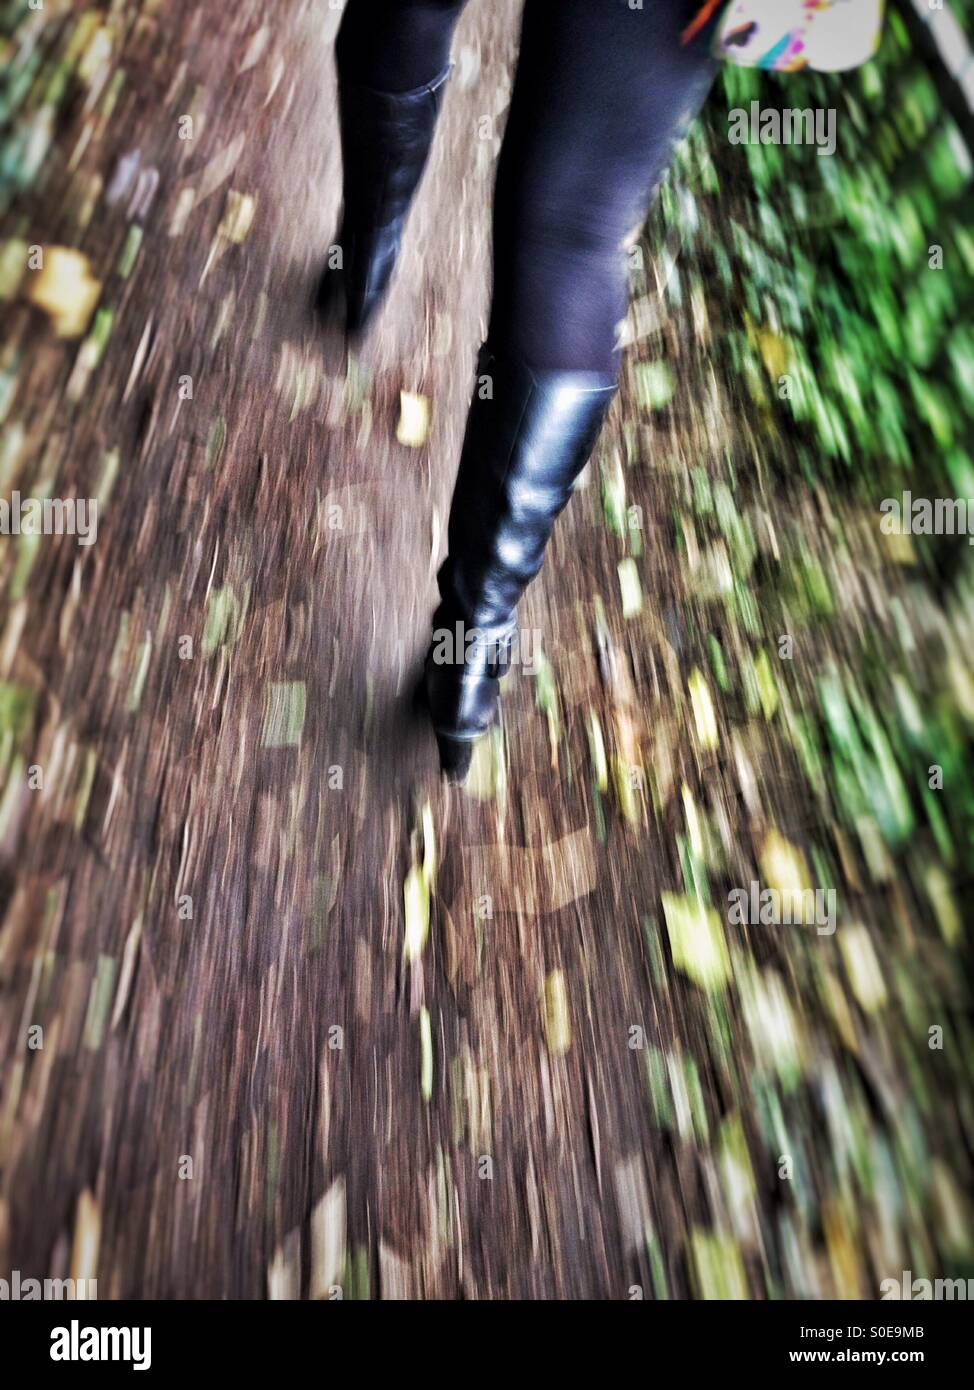 Motion blur of adult female legs wearing boots quickly walks away along a rural pathway - Stock Image